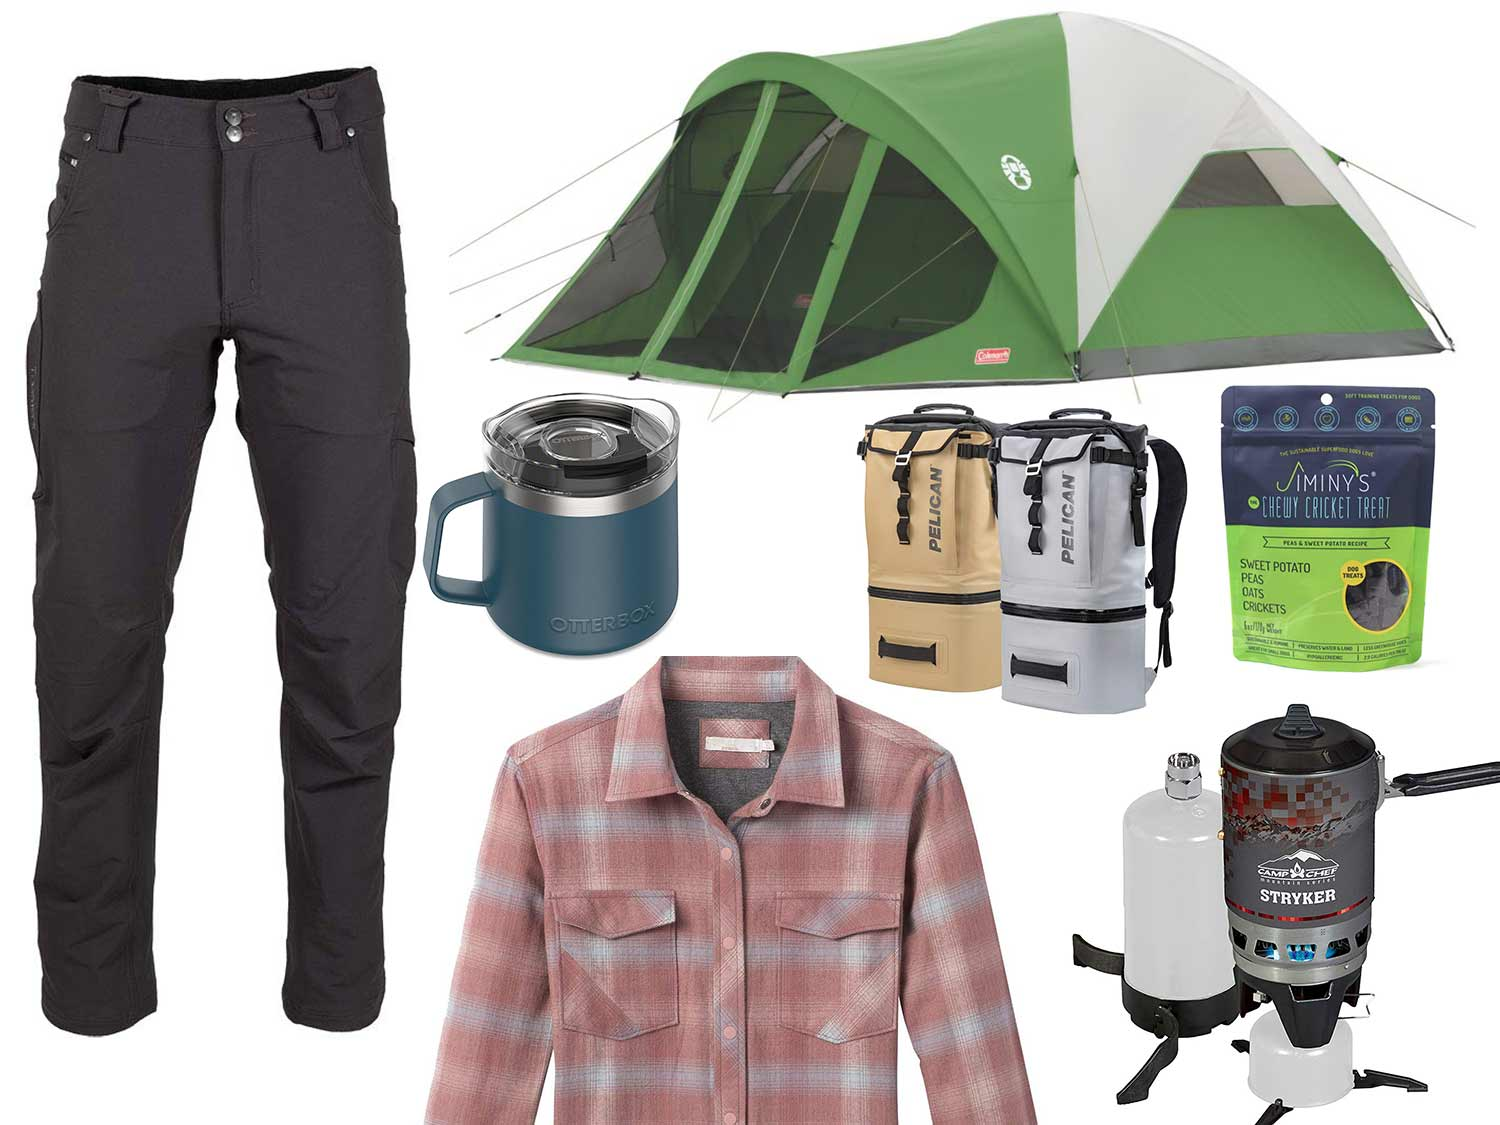 The 2020 Camping Gear Gift Guide